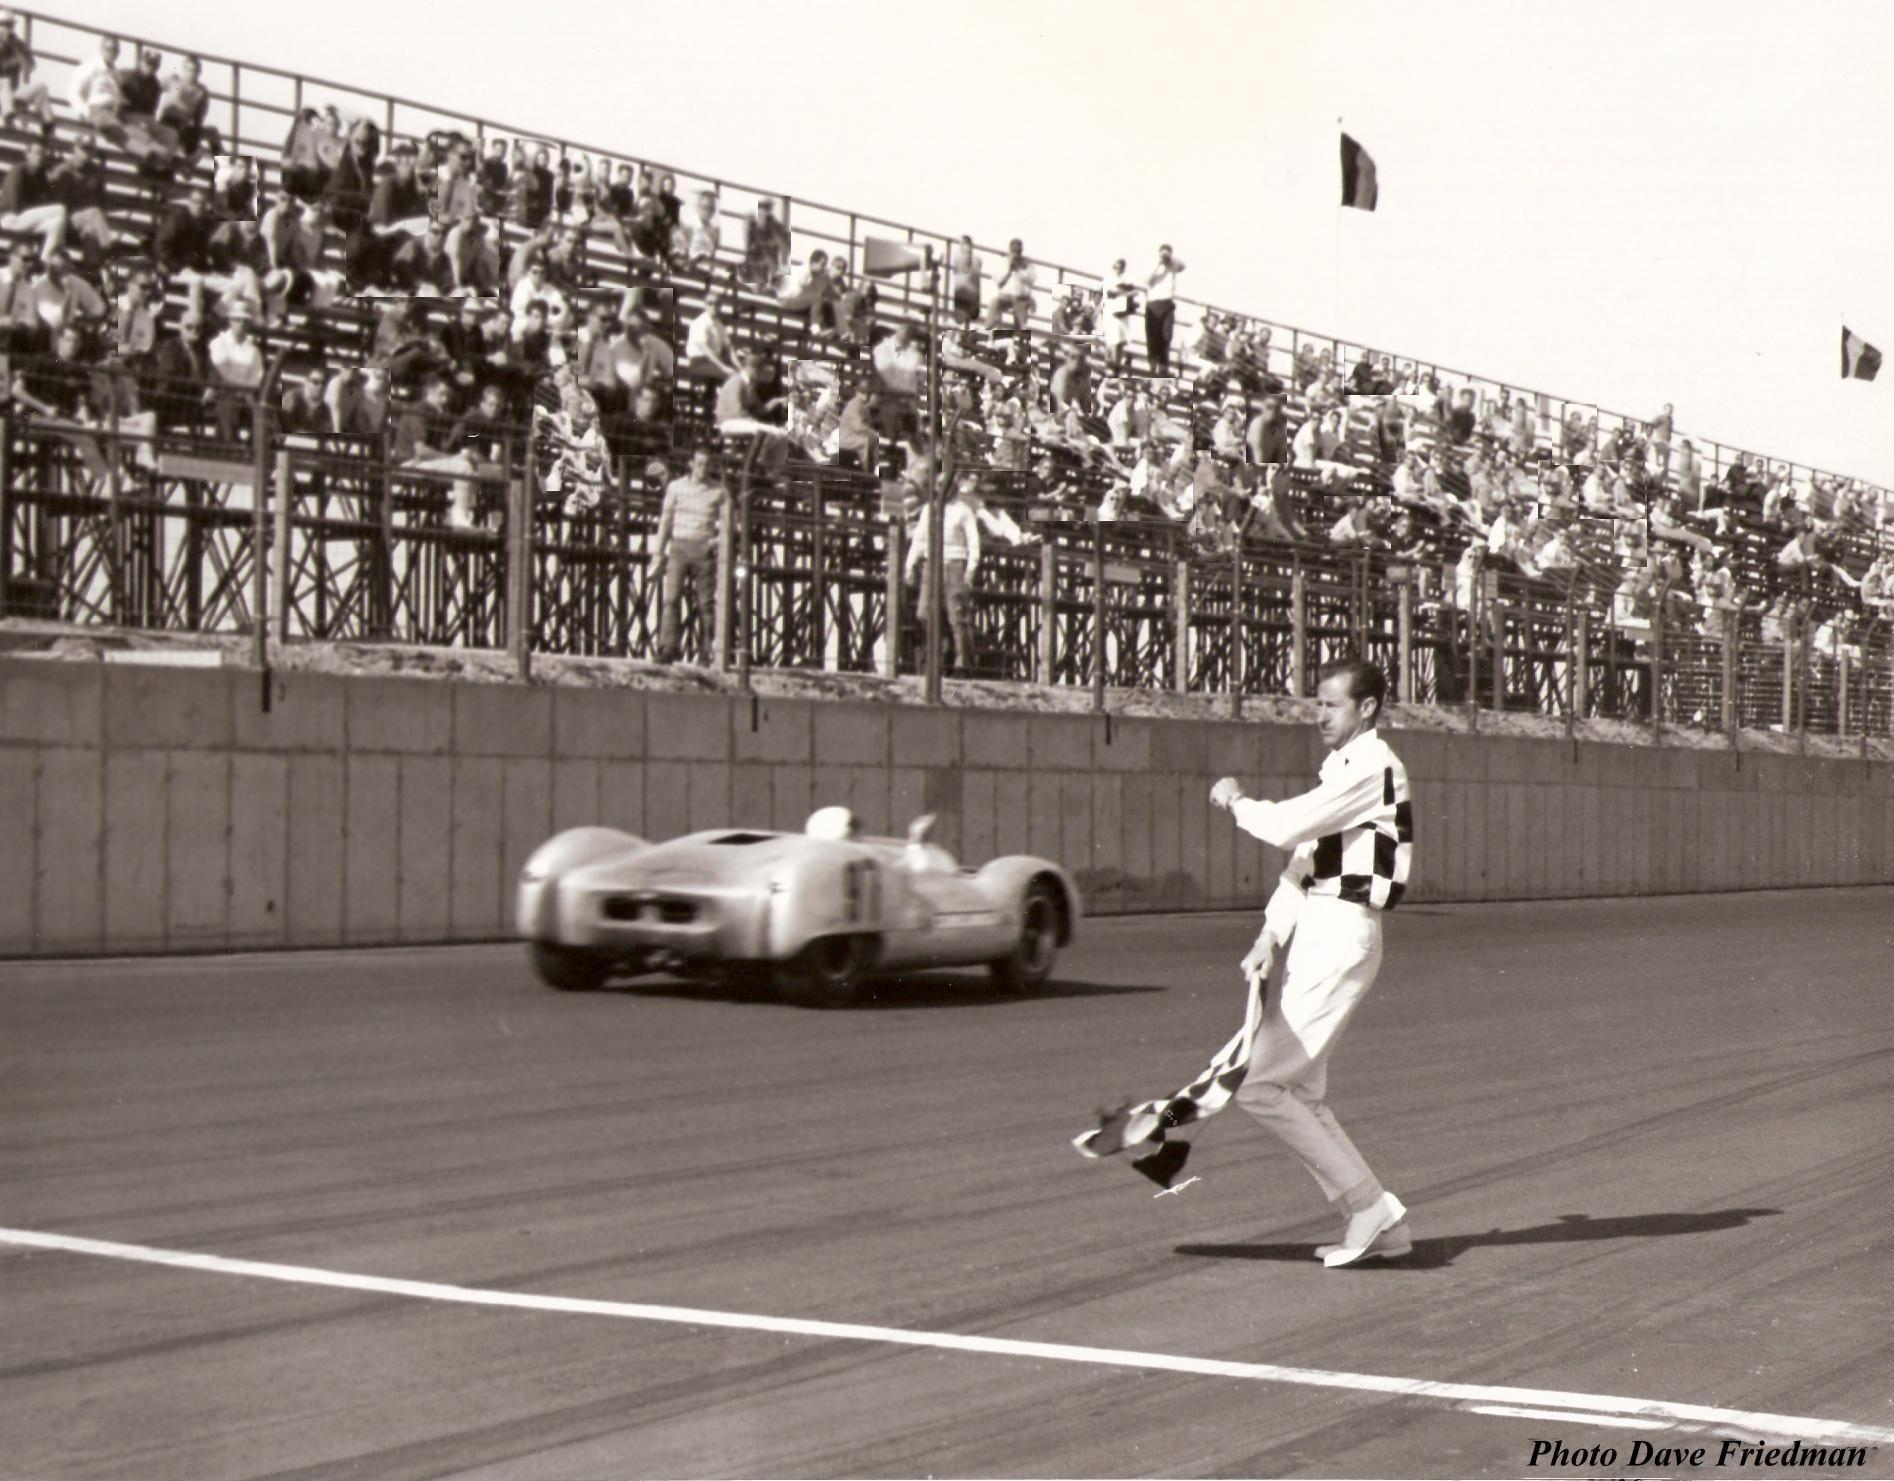 Dave MacDonald scores victory in the Shelby King Cobra Lang-Cooper at Phoenix